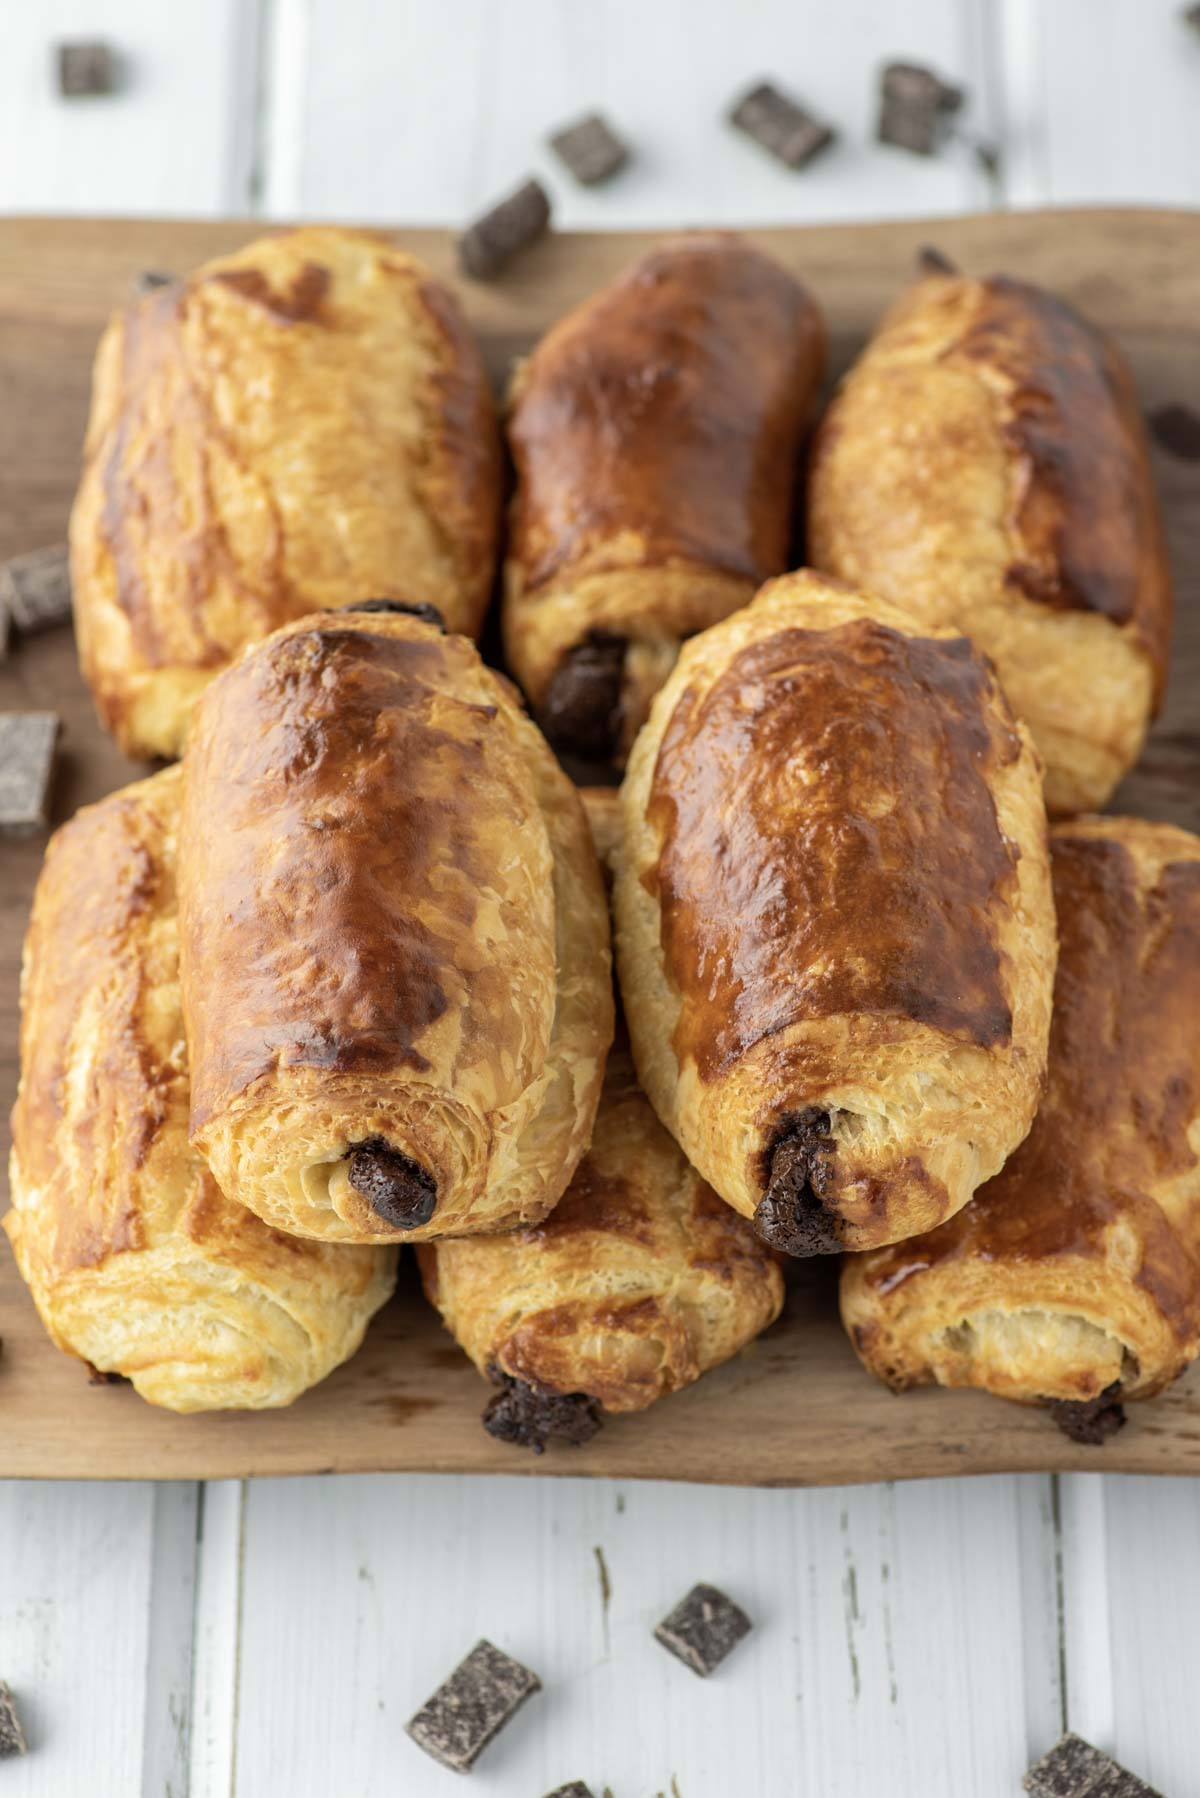 stacked chocolate croissants on wood cutting board